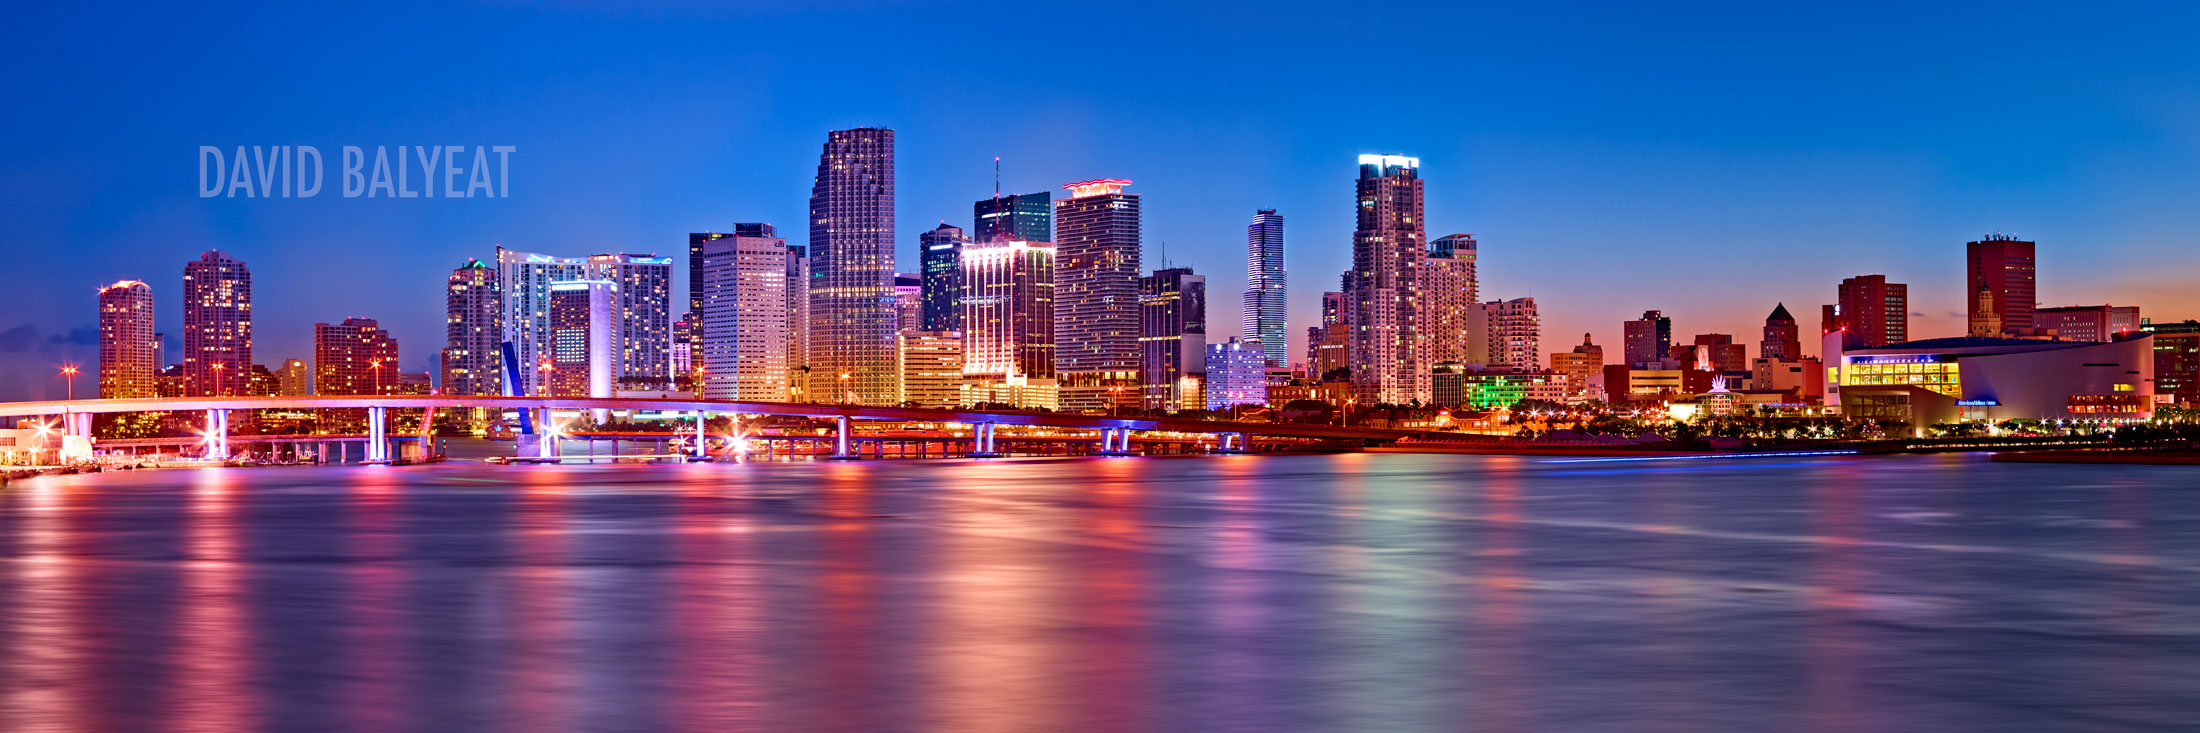 Miami Skyline  David Balyeat Photography Store